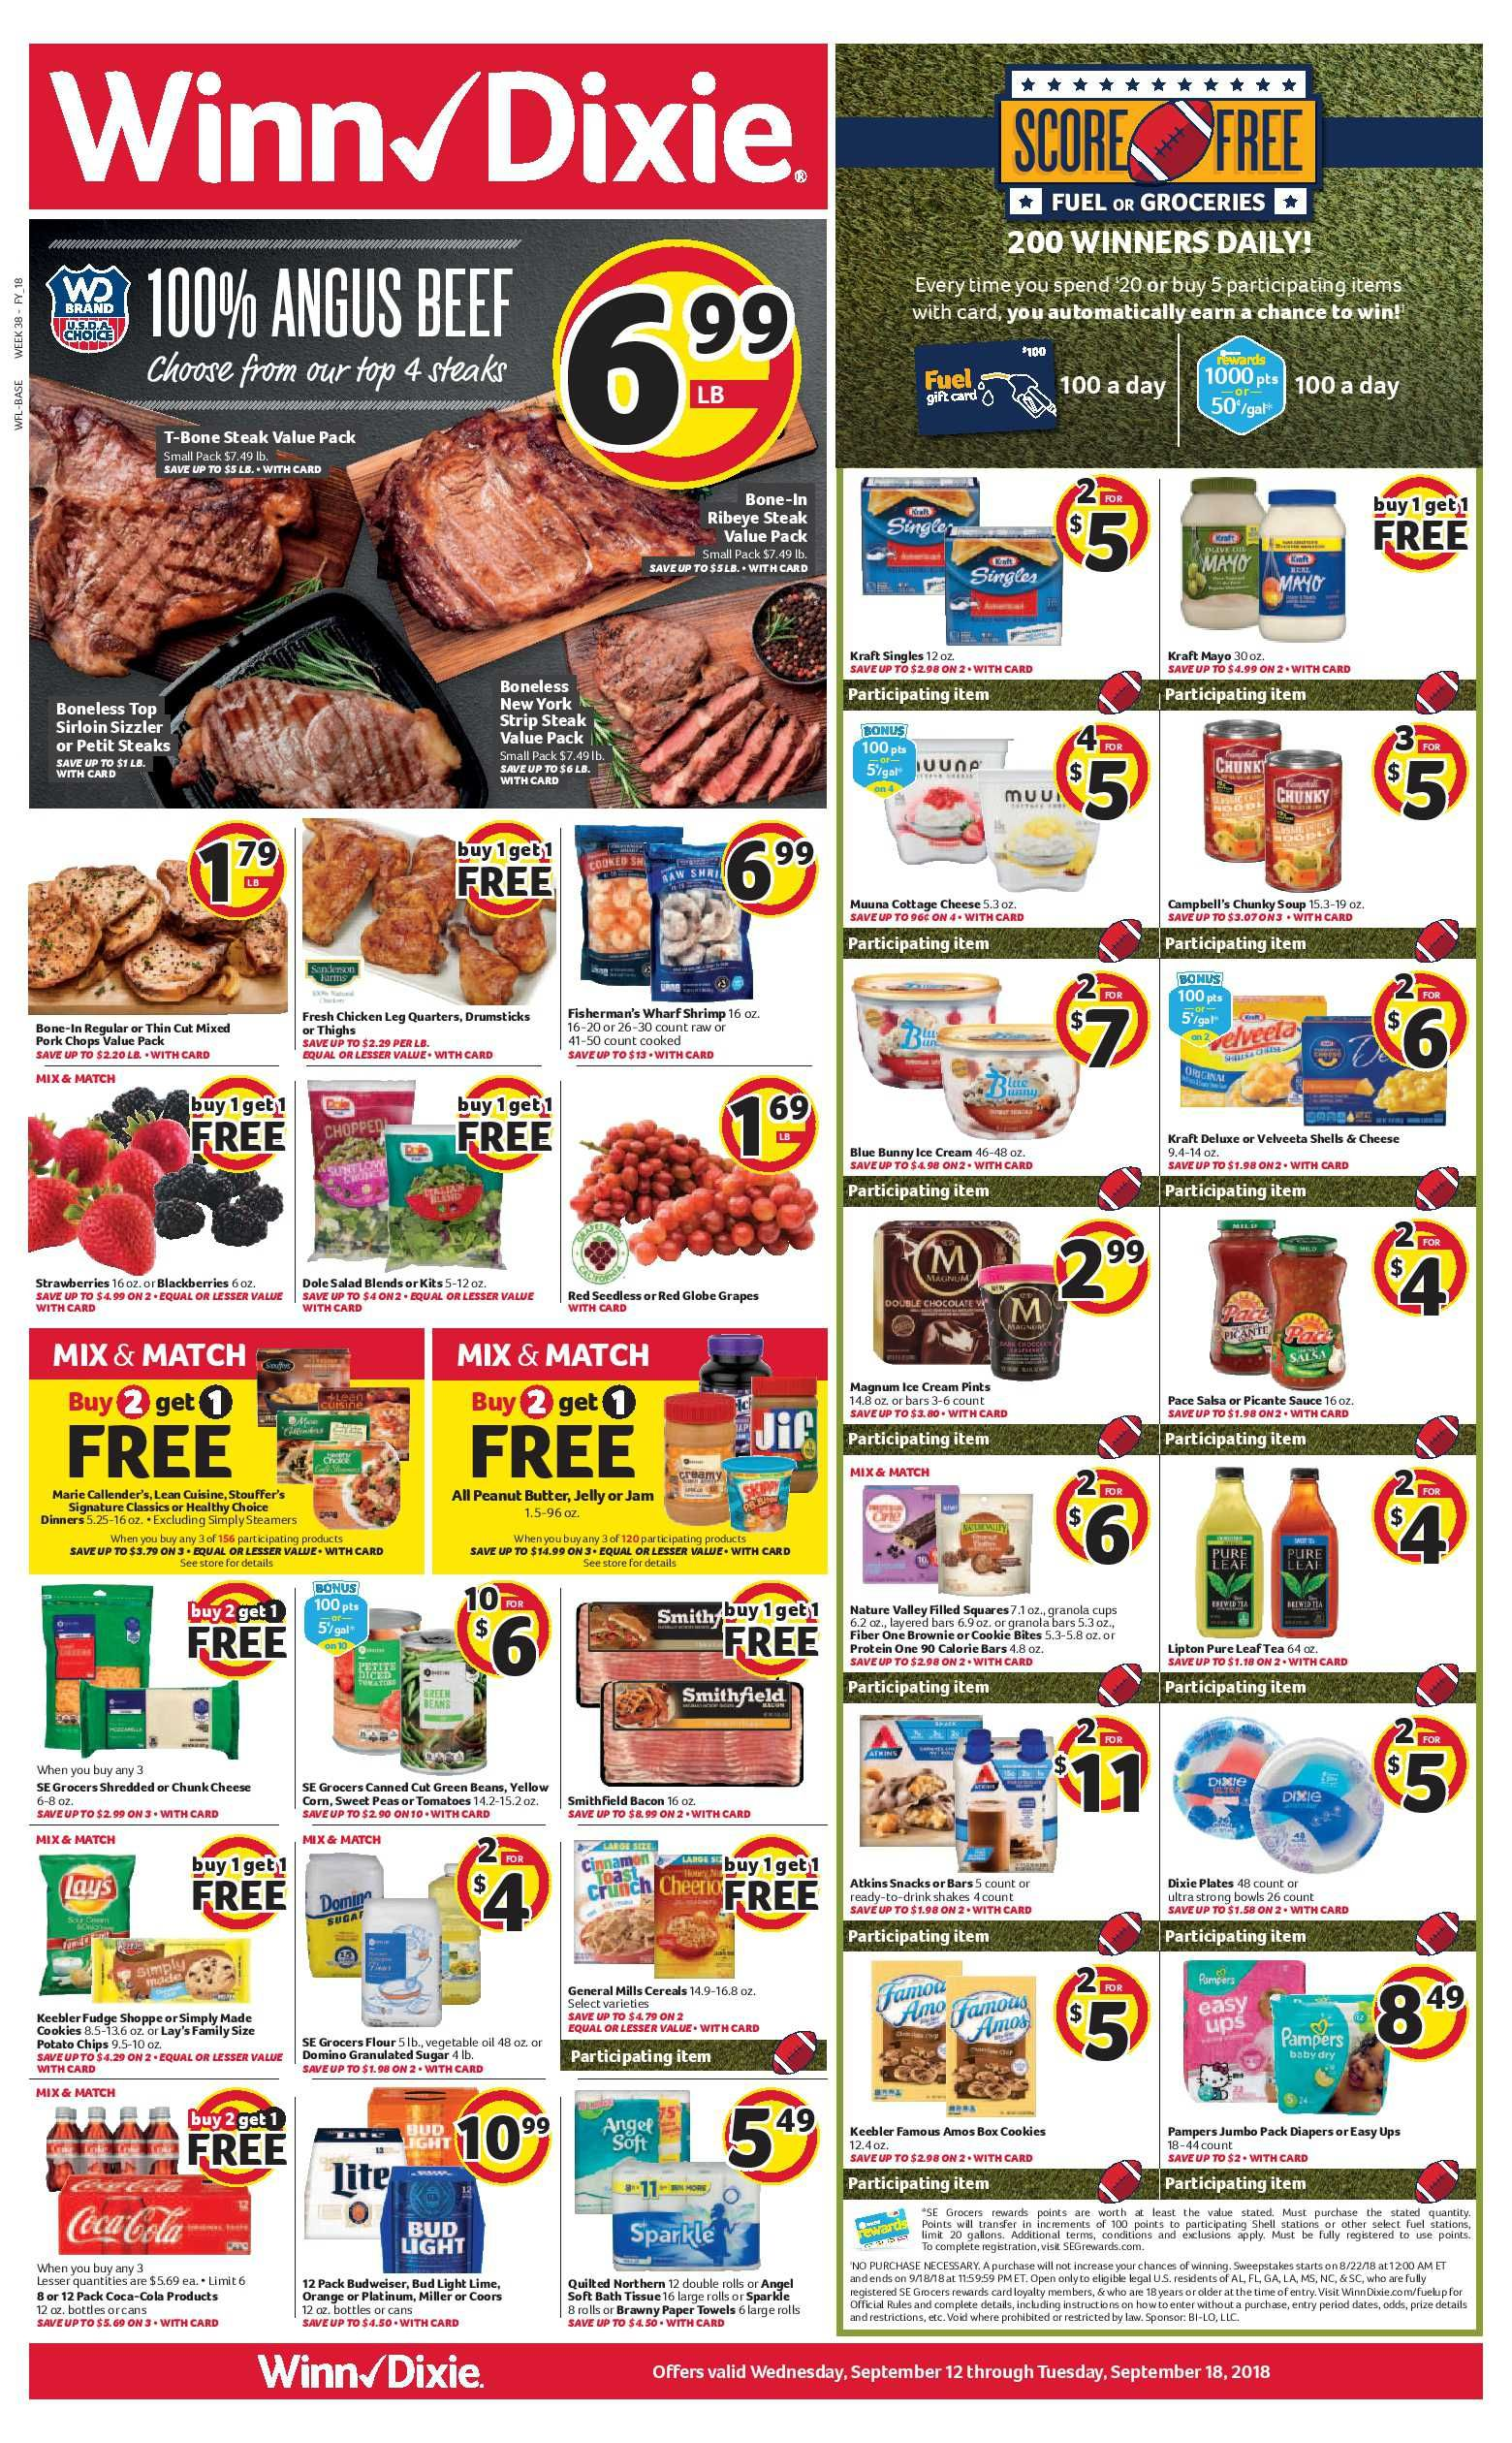 Winn Dixie Weekly Ad Flyer Valid From 03 04 20 03 10 20 Weeklyad123 Com Weekly Ad Circular Grocery Stores Grocery Winn Dixie Weekly Ad Weekly Ads